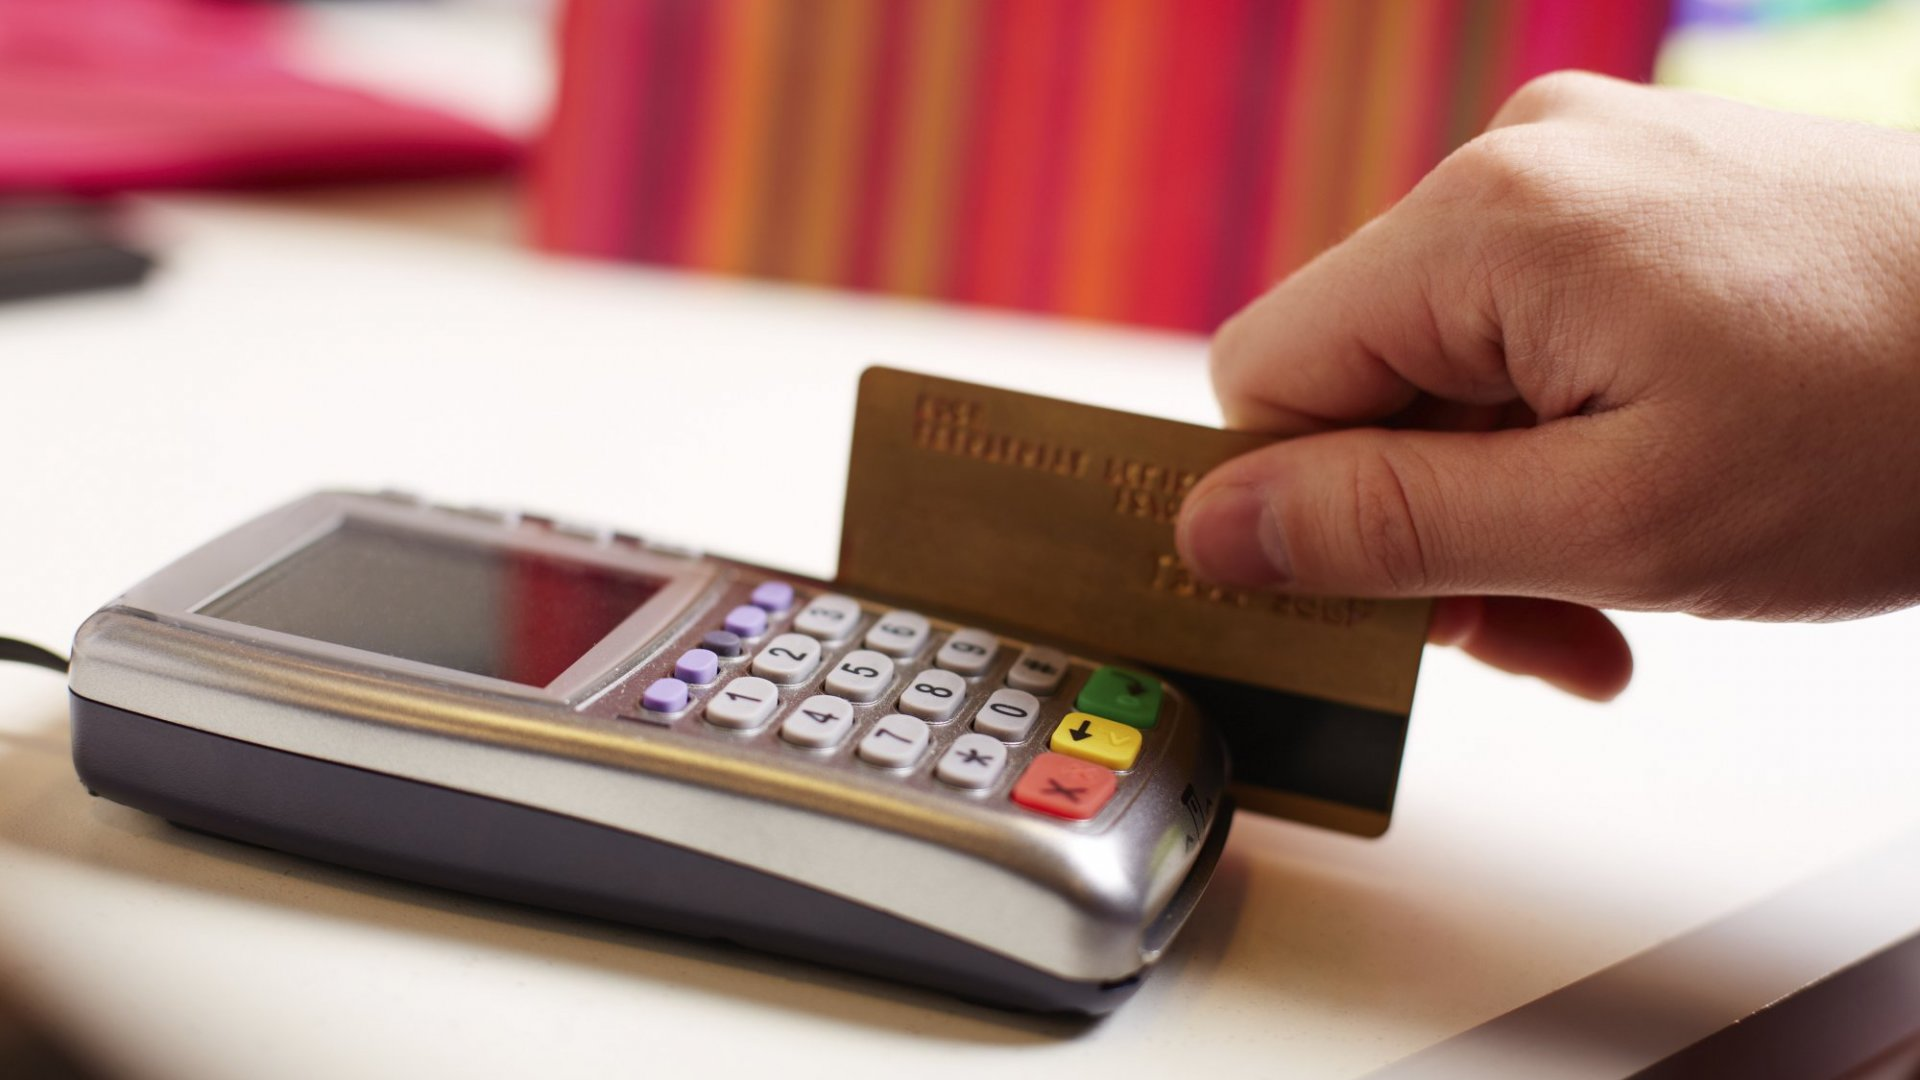 Top 4 Prepaid Cards for Business Owners